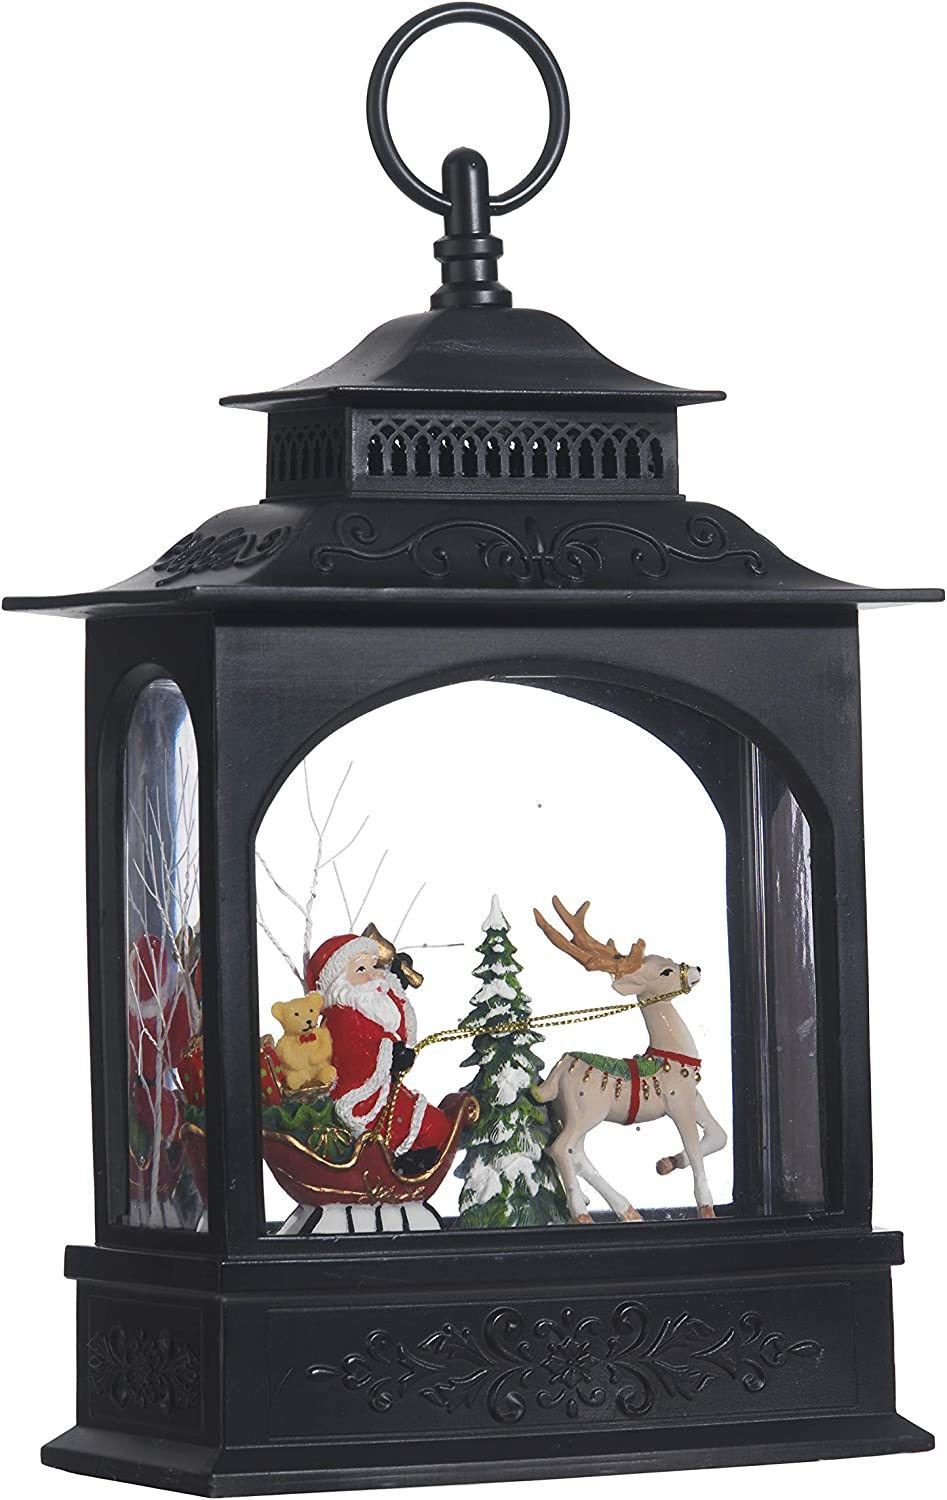 "Raz Imports Holiday Water Lanterns 11"" Santa in Sleigh Lighted Water Lantern - Premium Christmas Holiday Home Decor"